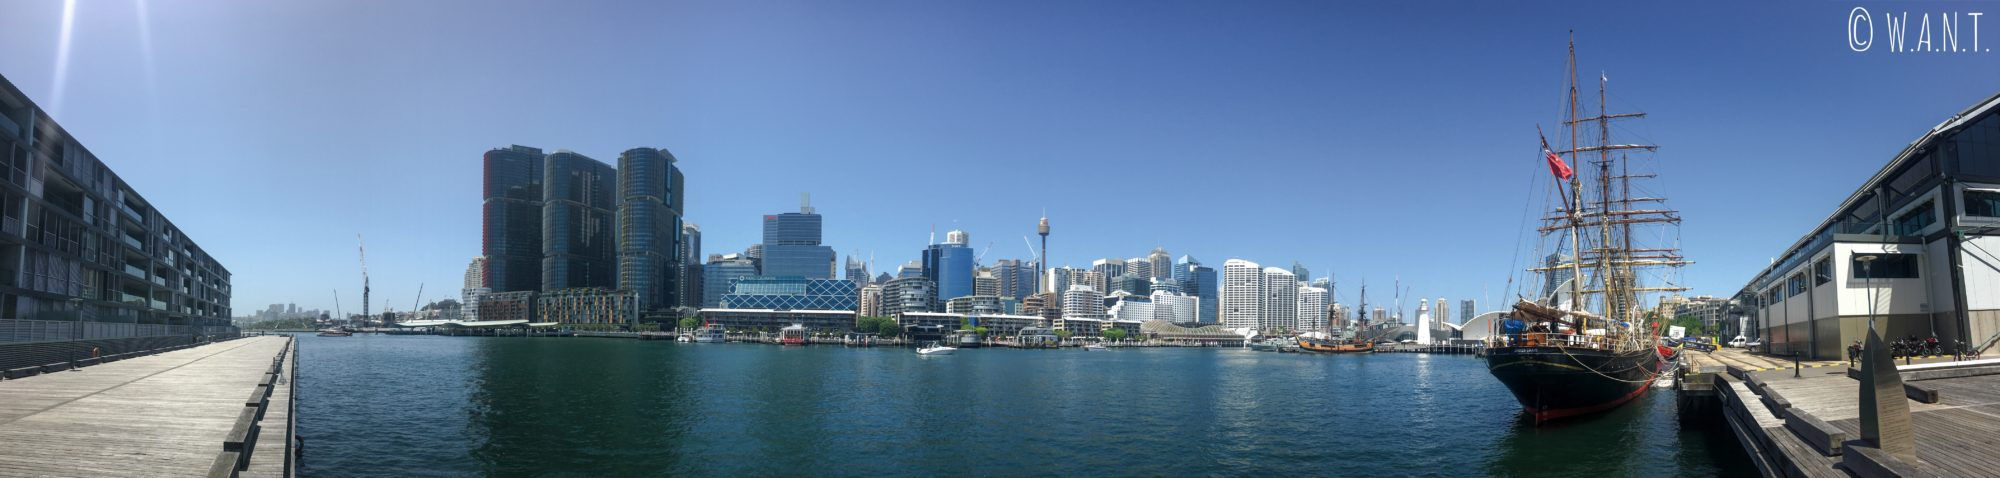 Panorama de Darling Harbour à Sydney